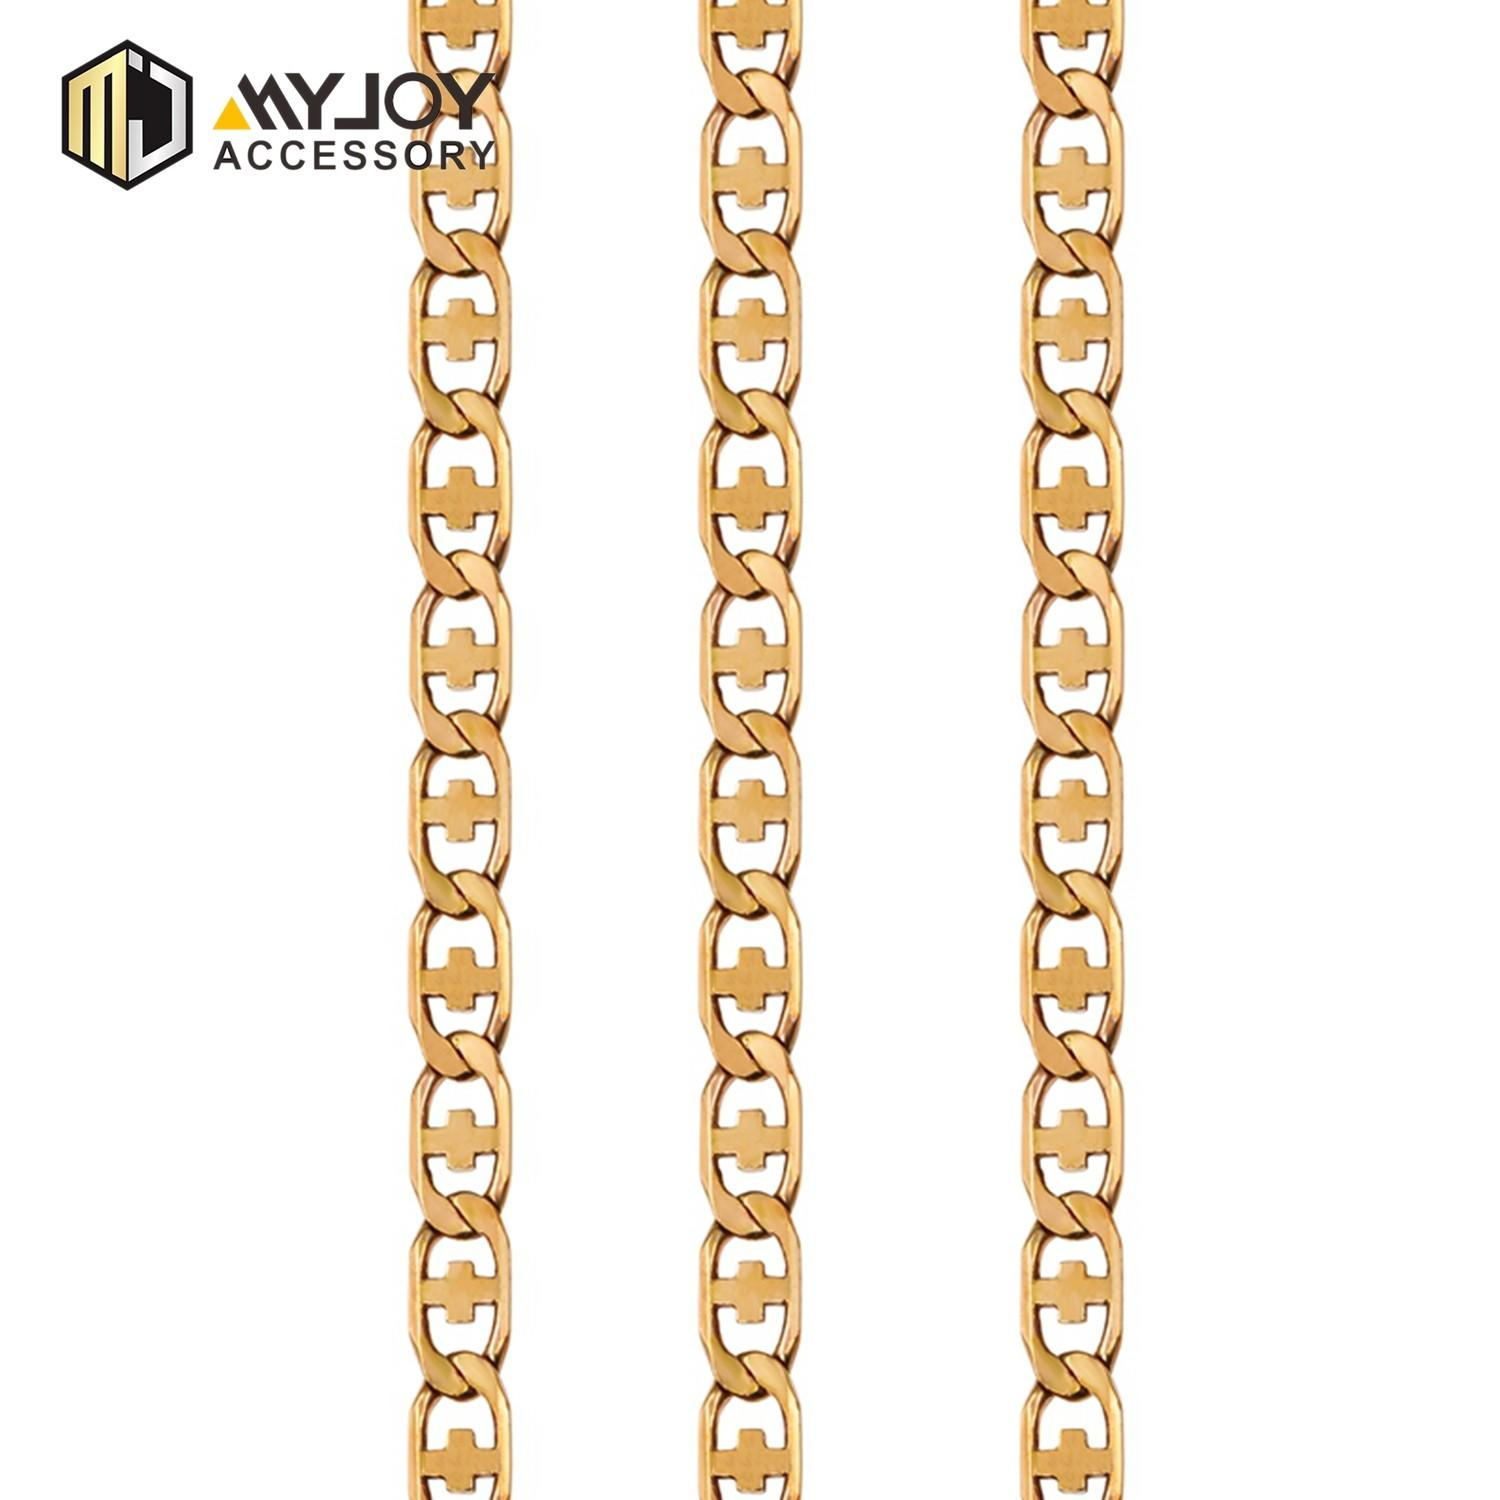 MYJOY New strap chain for sale for purses-1